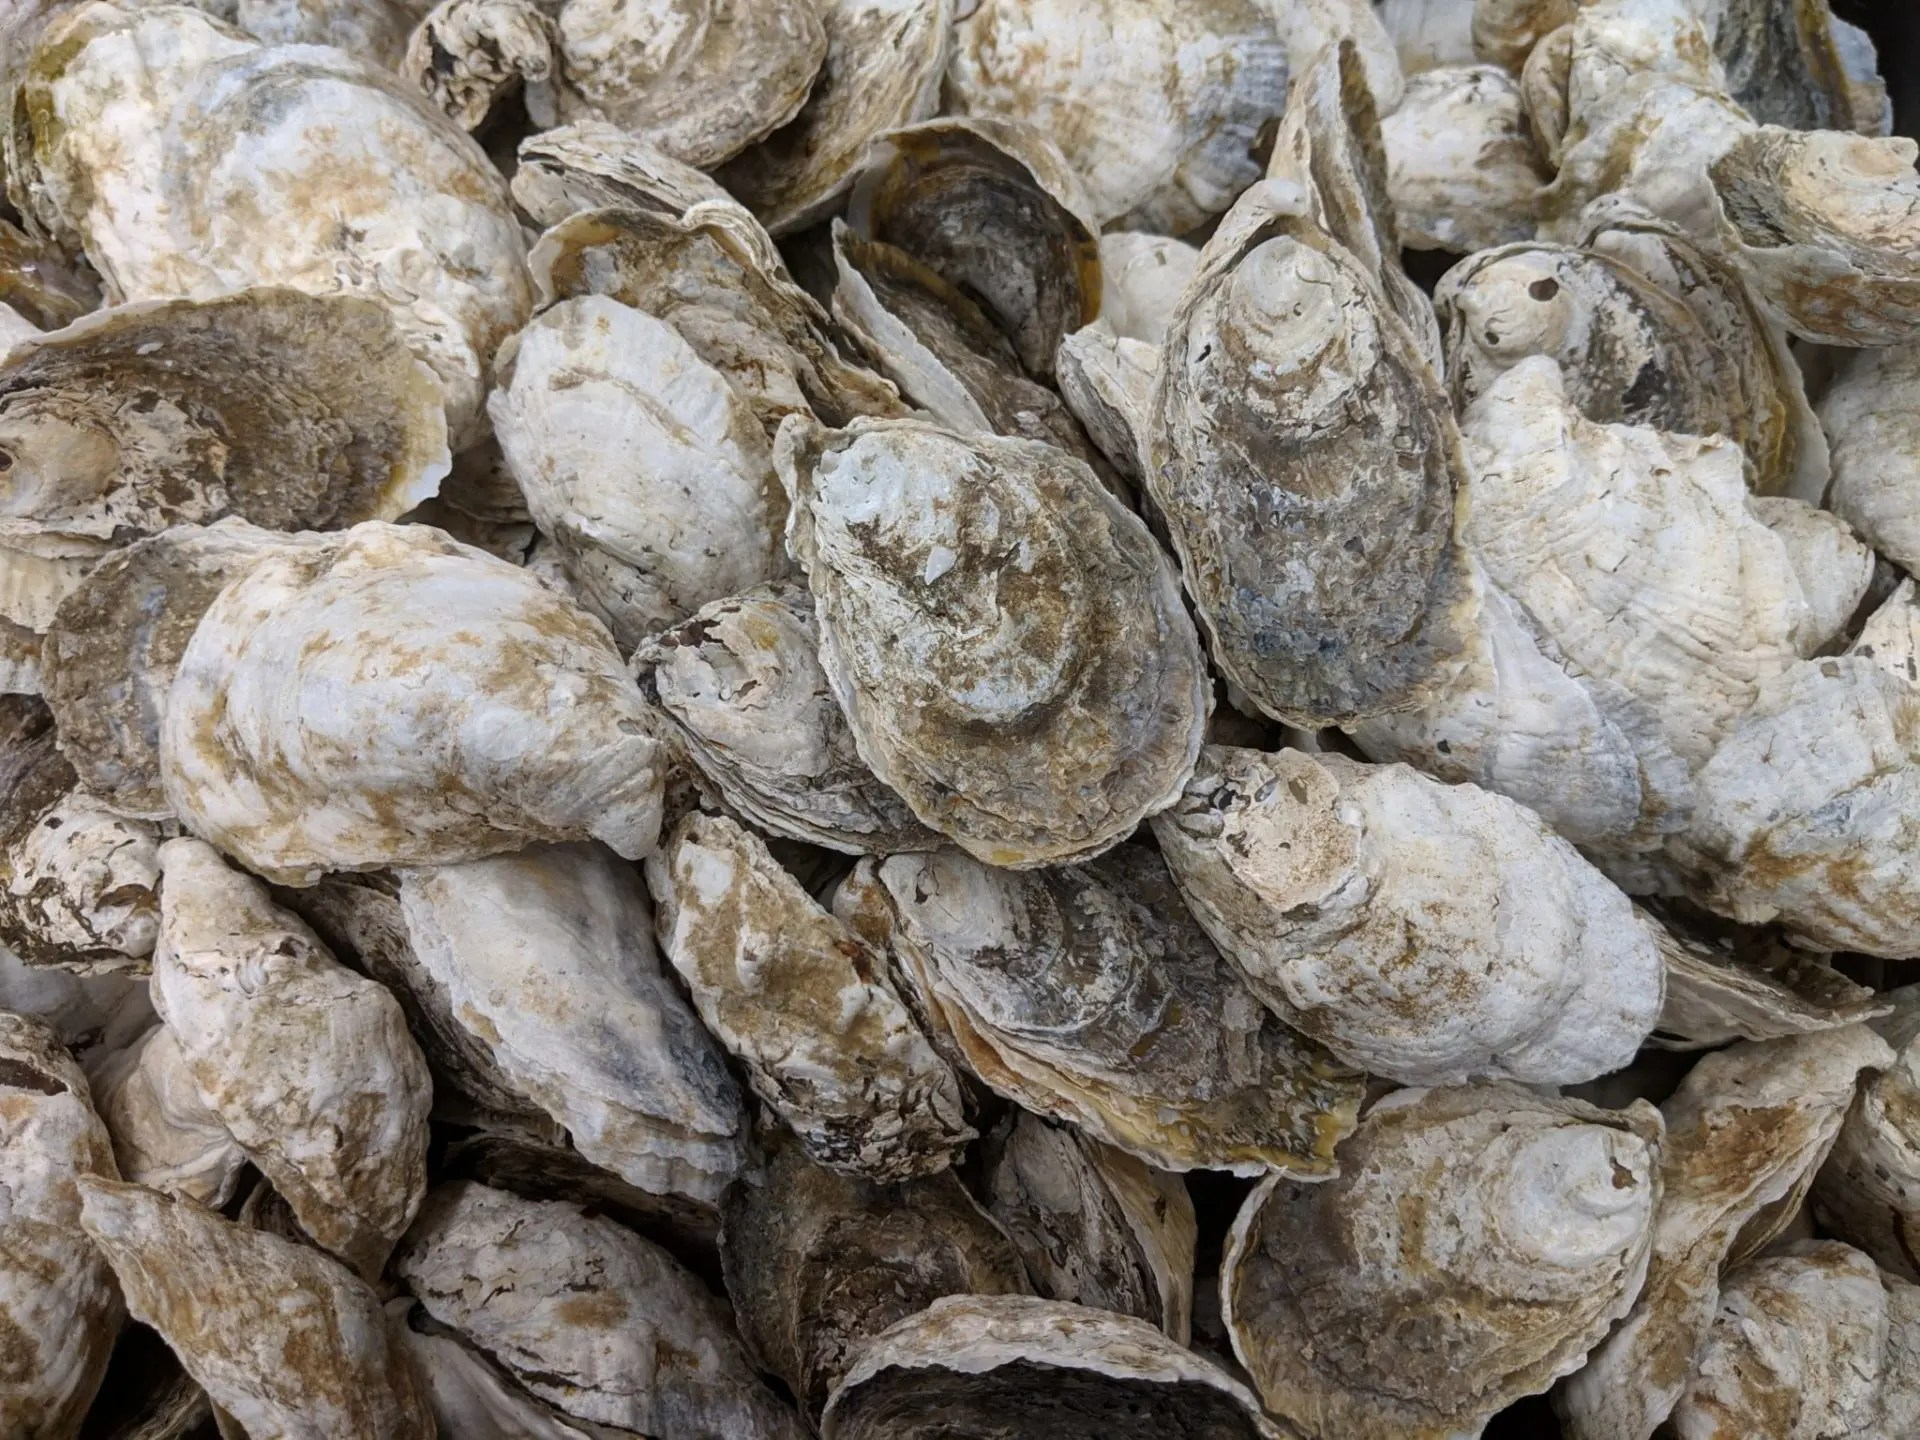 Local fresh oysters in the shell